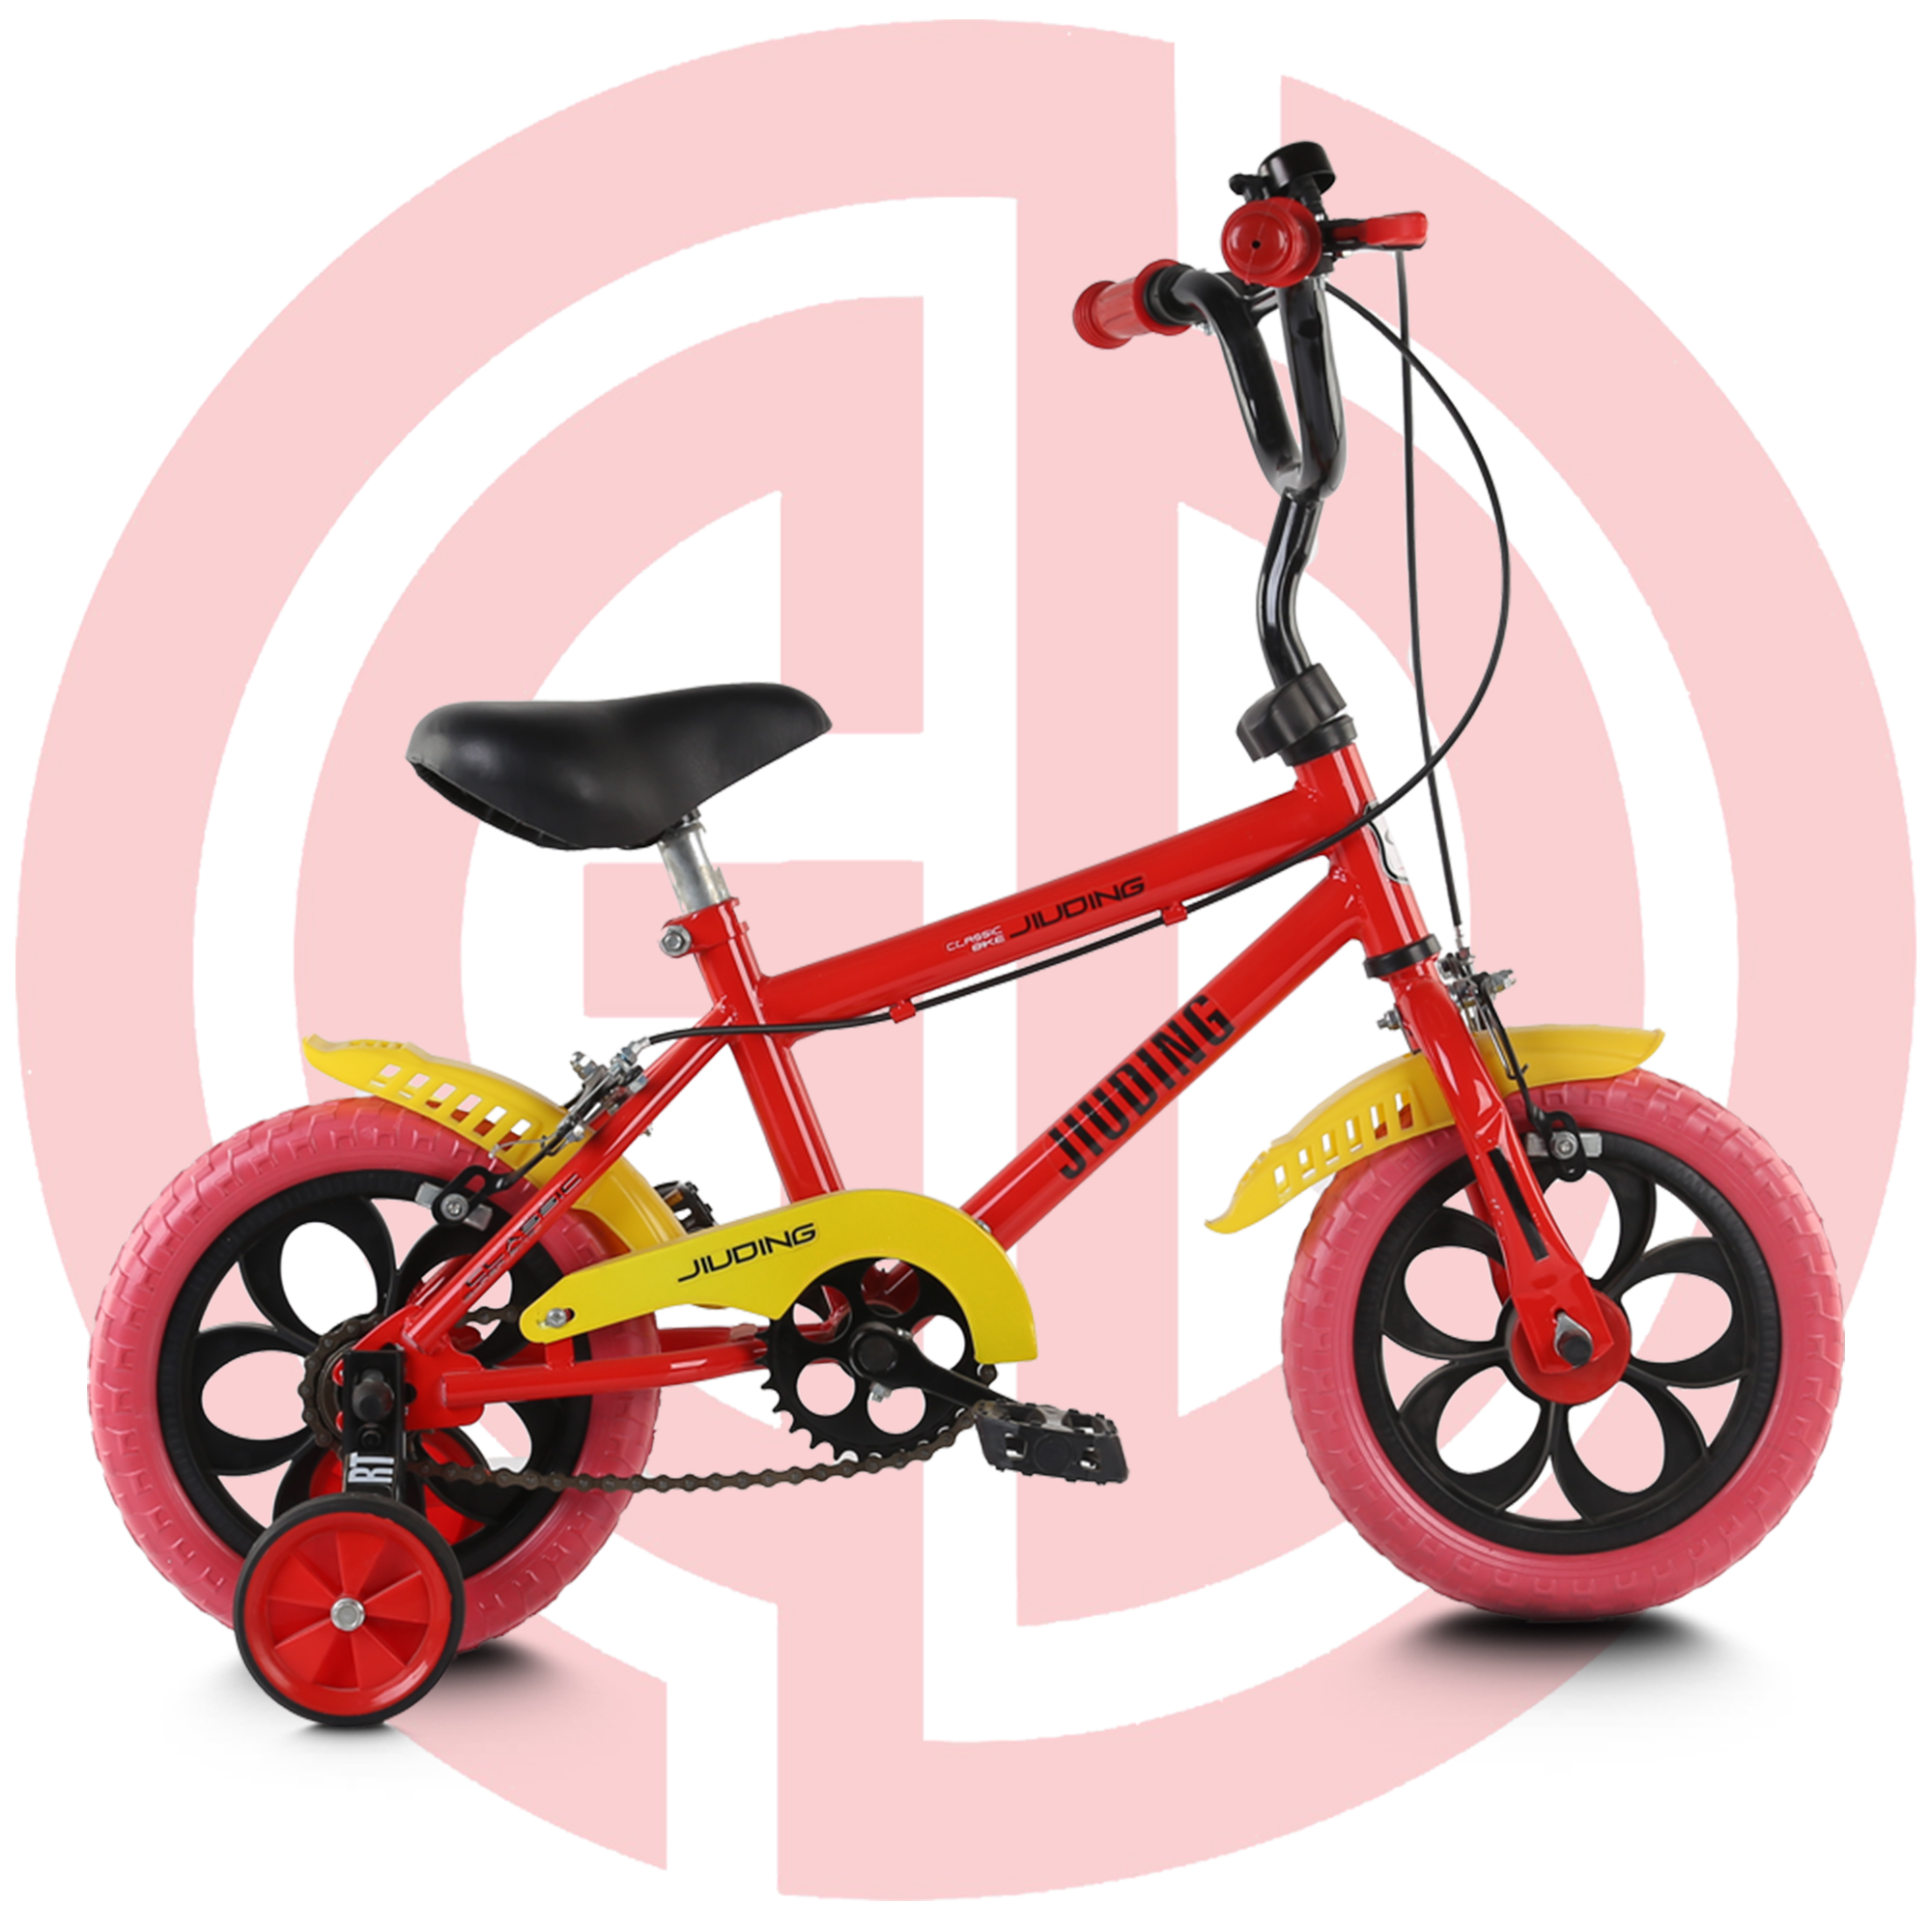 GD-KB-008:  Boy's bike with training wheels, cool kids' bike, fashionable children bike, red kids' bike